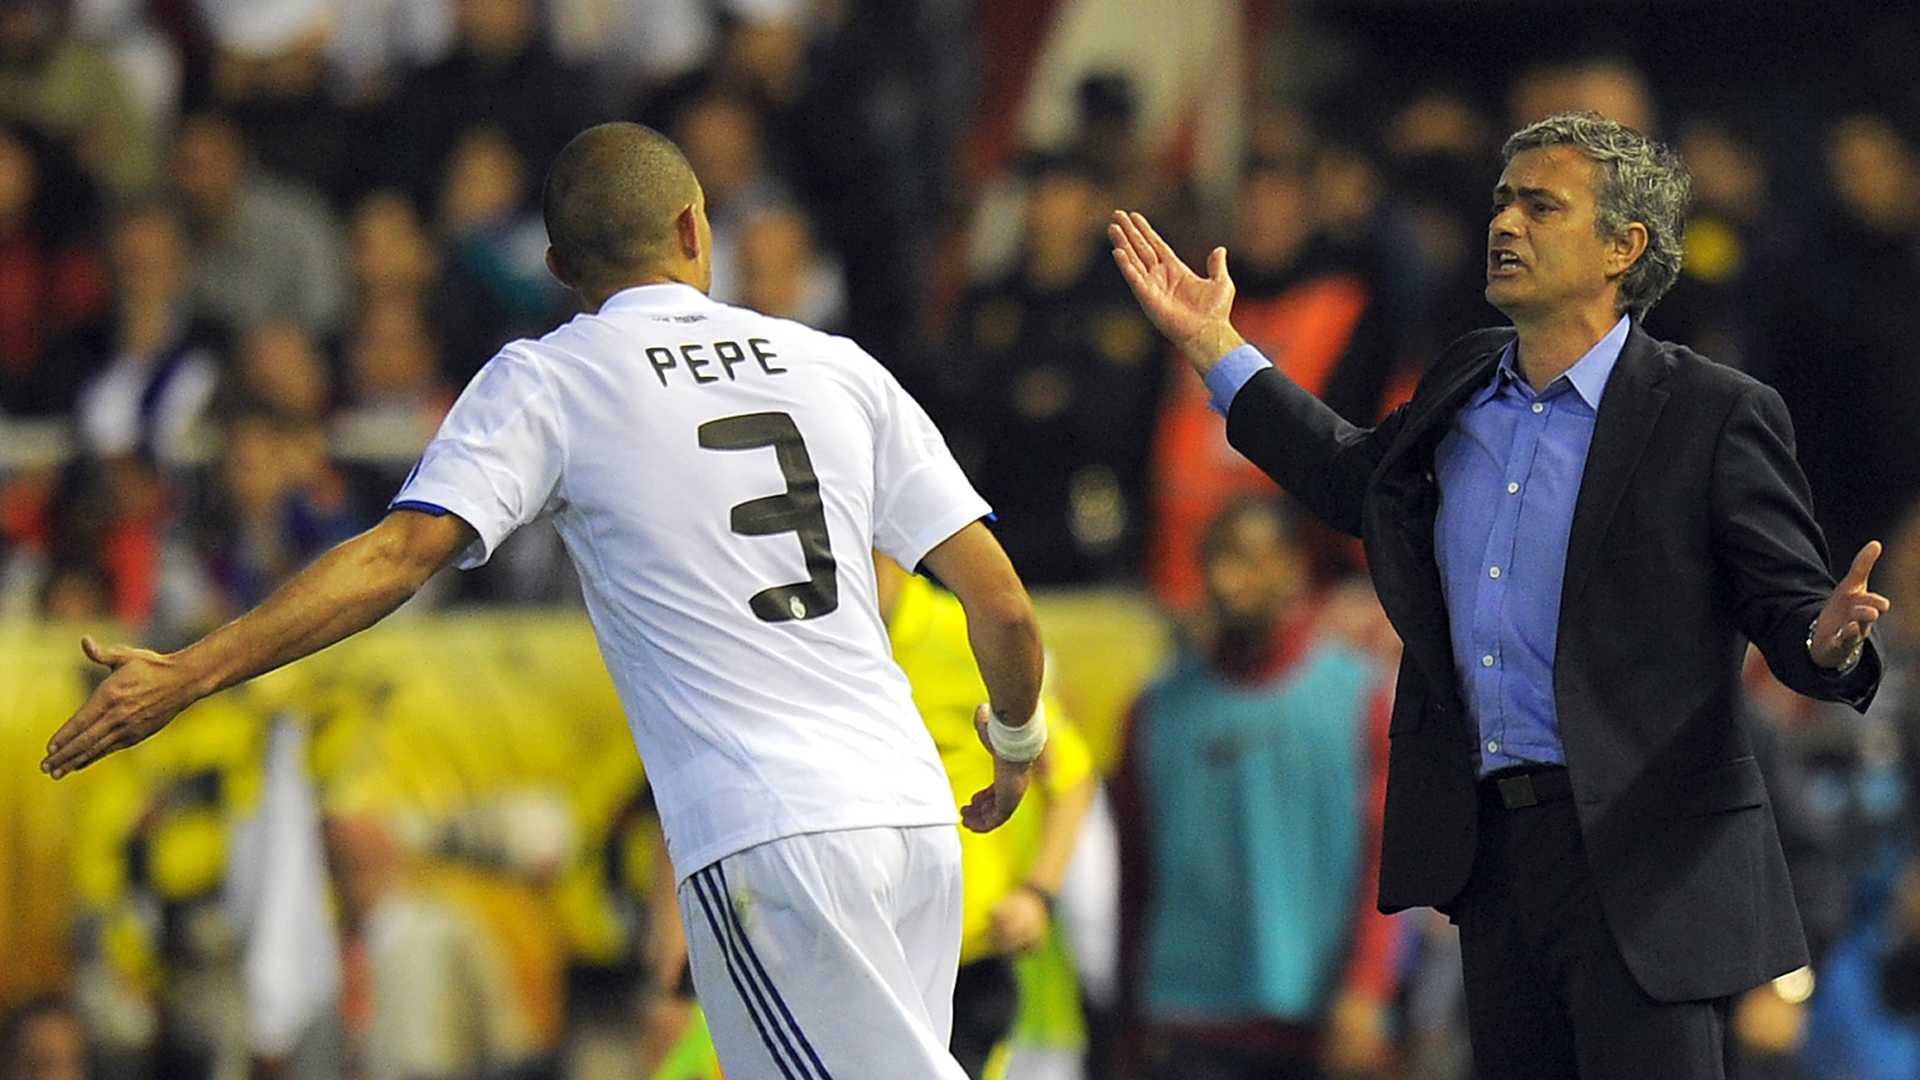 Jose Mourinho Pepe Real Madrid